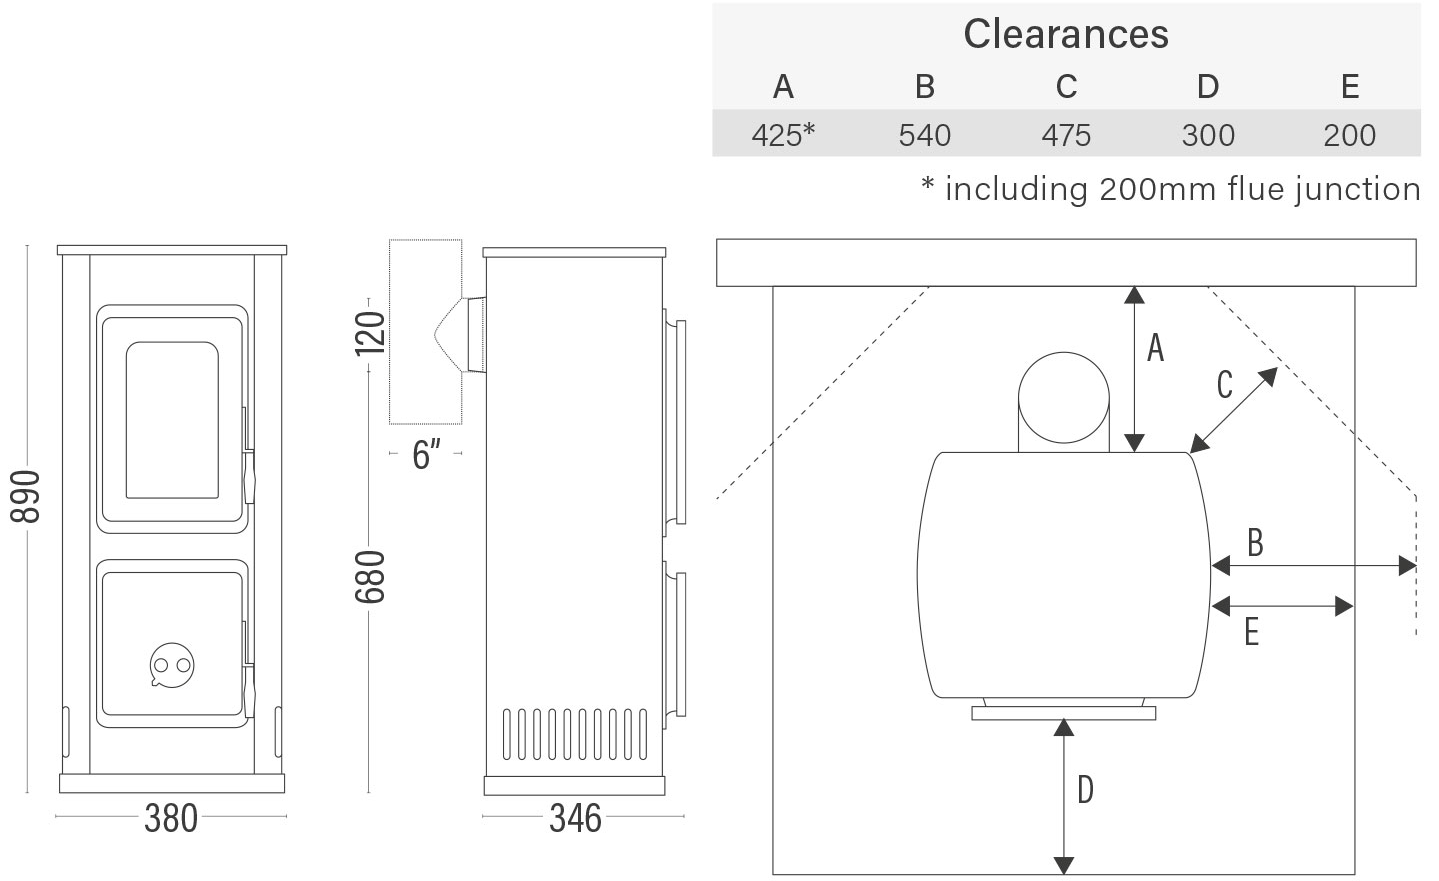 Euro Milano dimensions and clearances